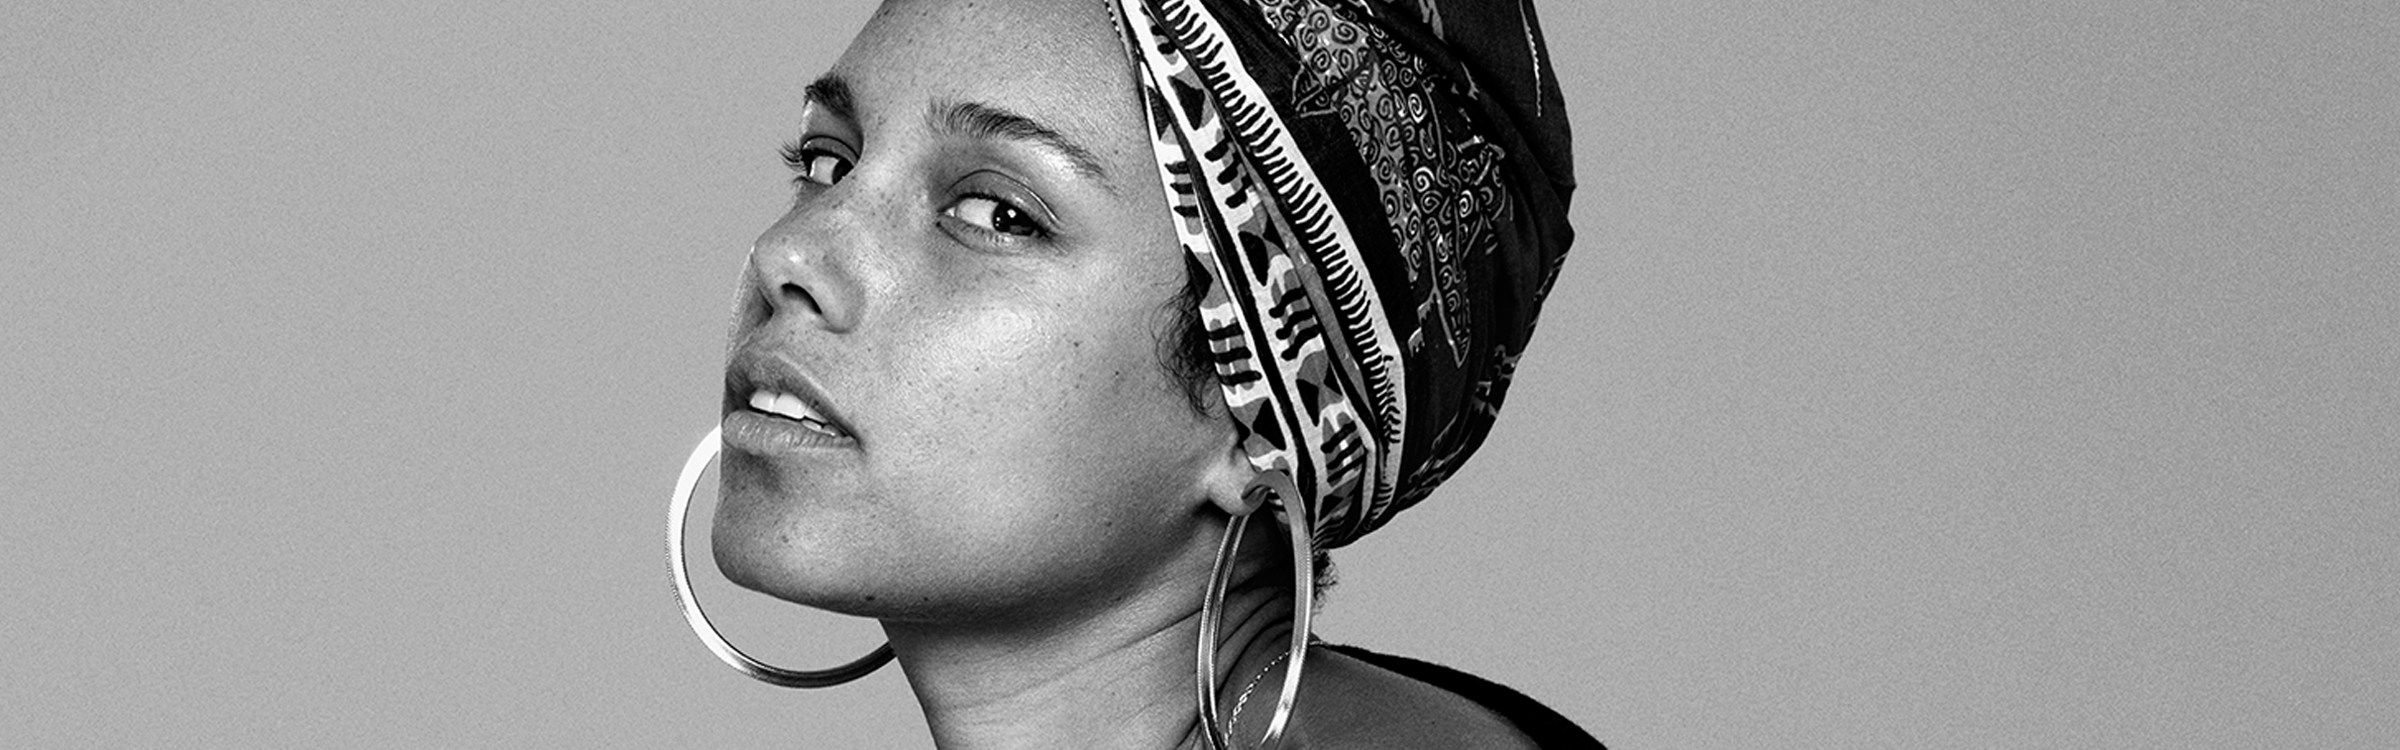 Alicia keys header